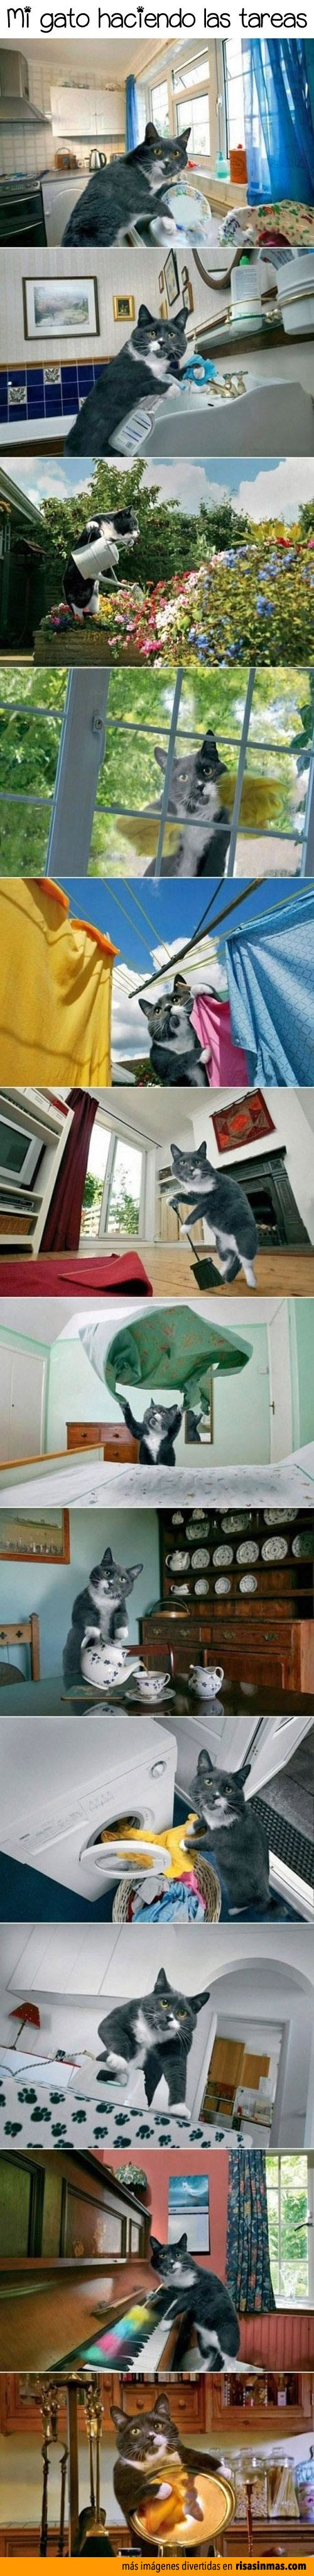 This cat photo-shop is too funny not to share! :) Great visual to use for descriptive language and get kids engaged in therapy.